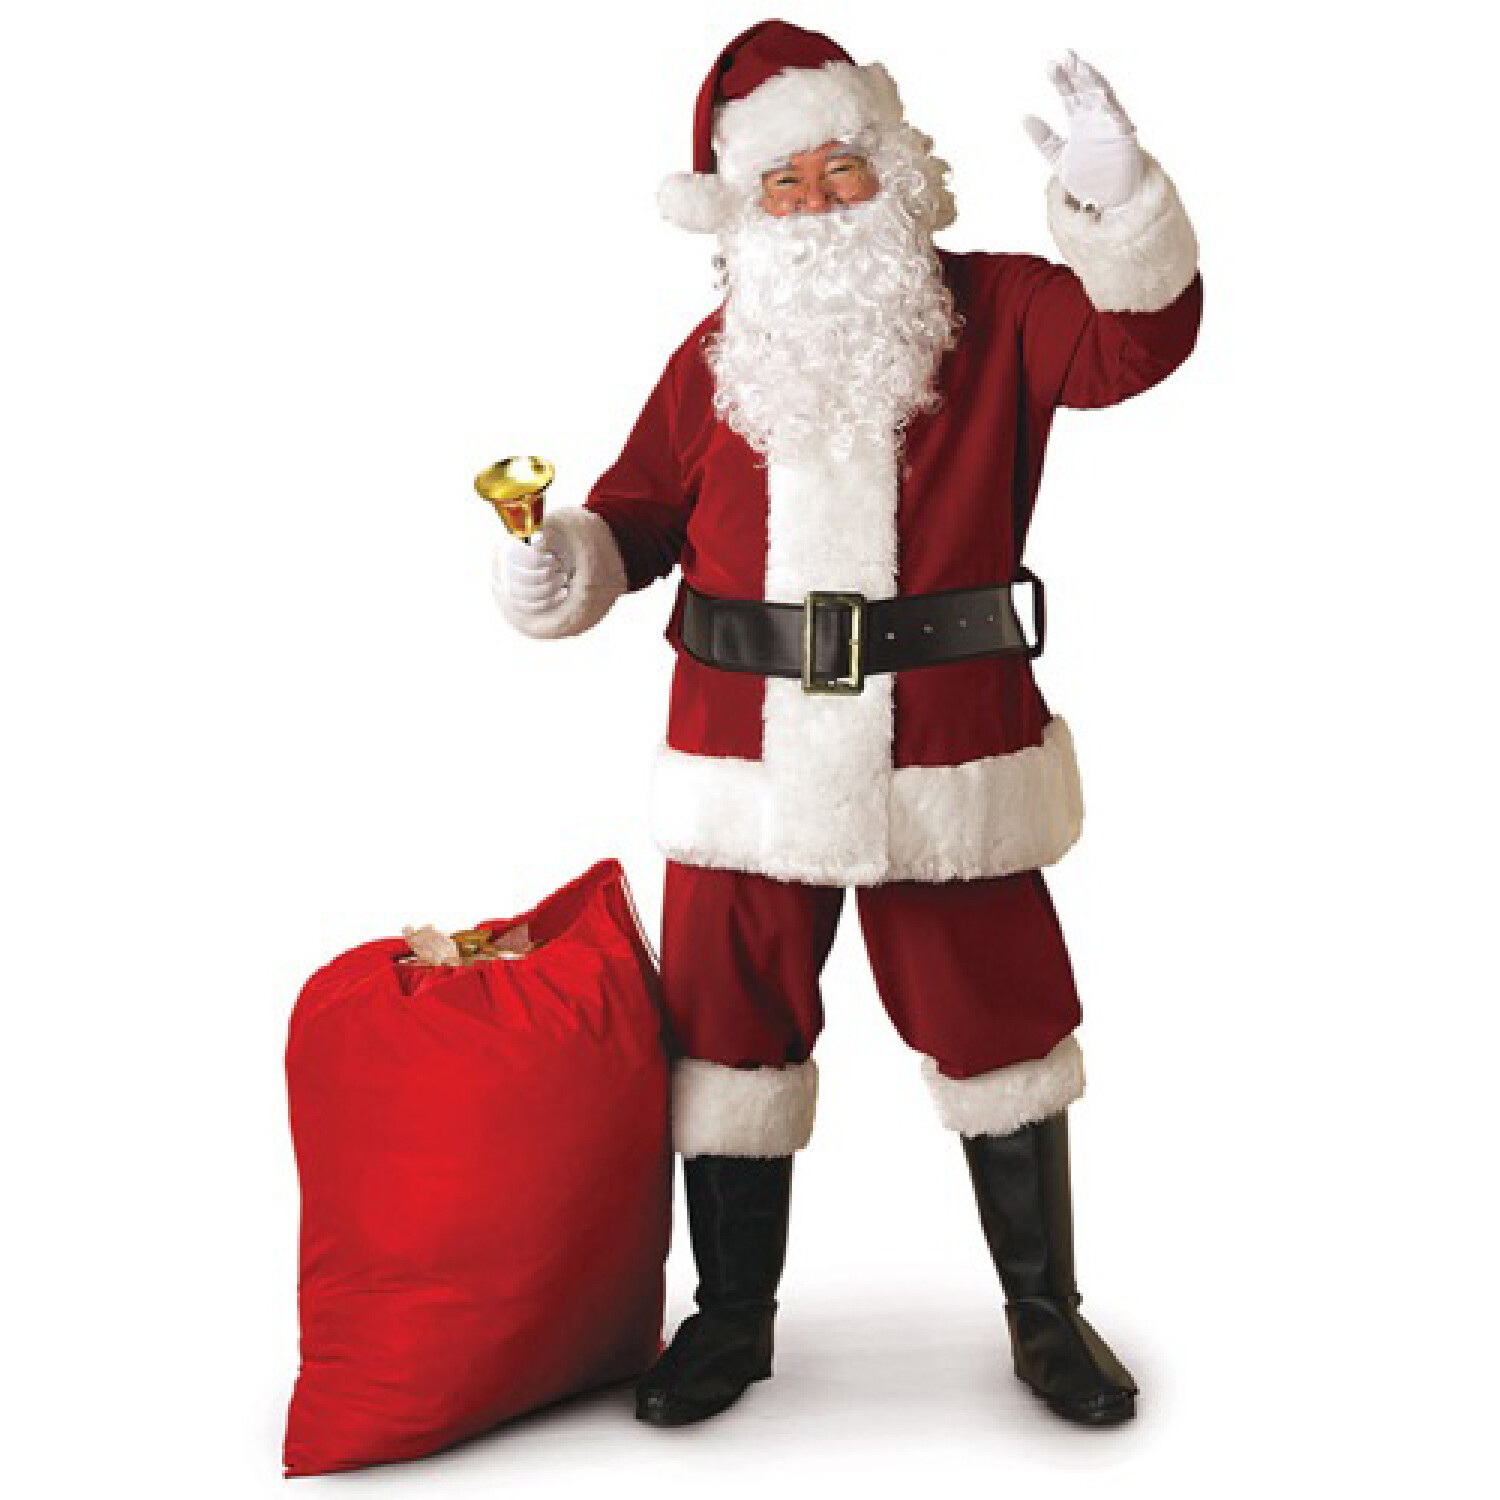 Rubies Santa Claus Suit Plush Costume incl Jacket Pants Wig and Beard Fits Mens Std Sz 40-48 - One Size - Red